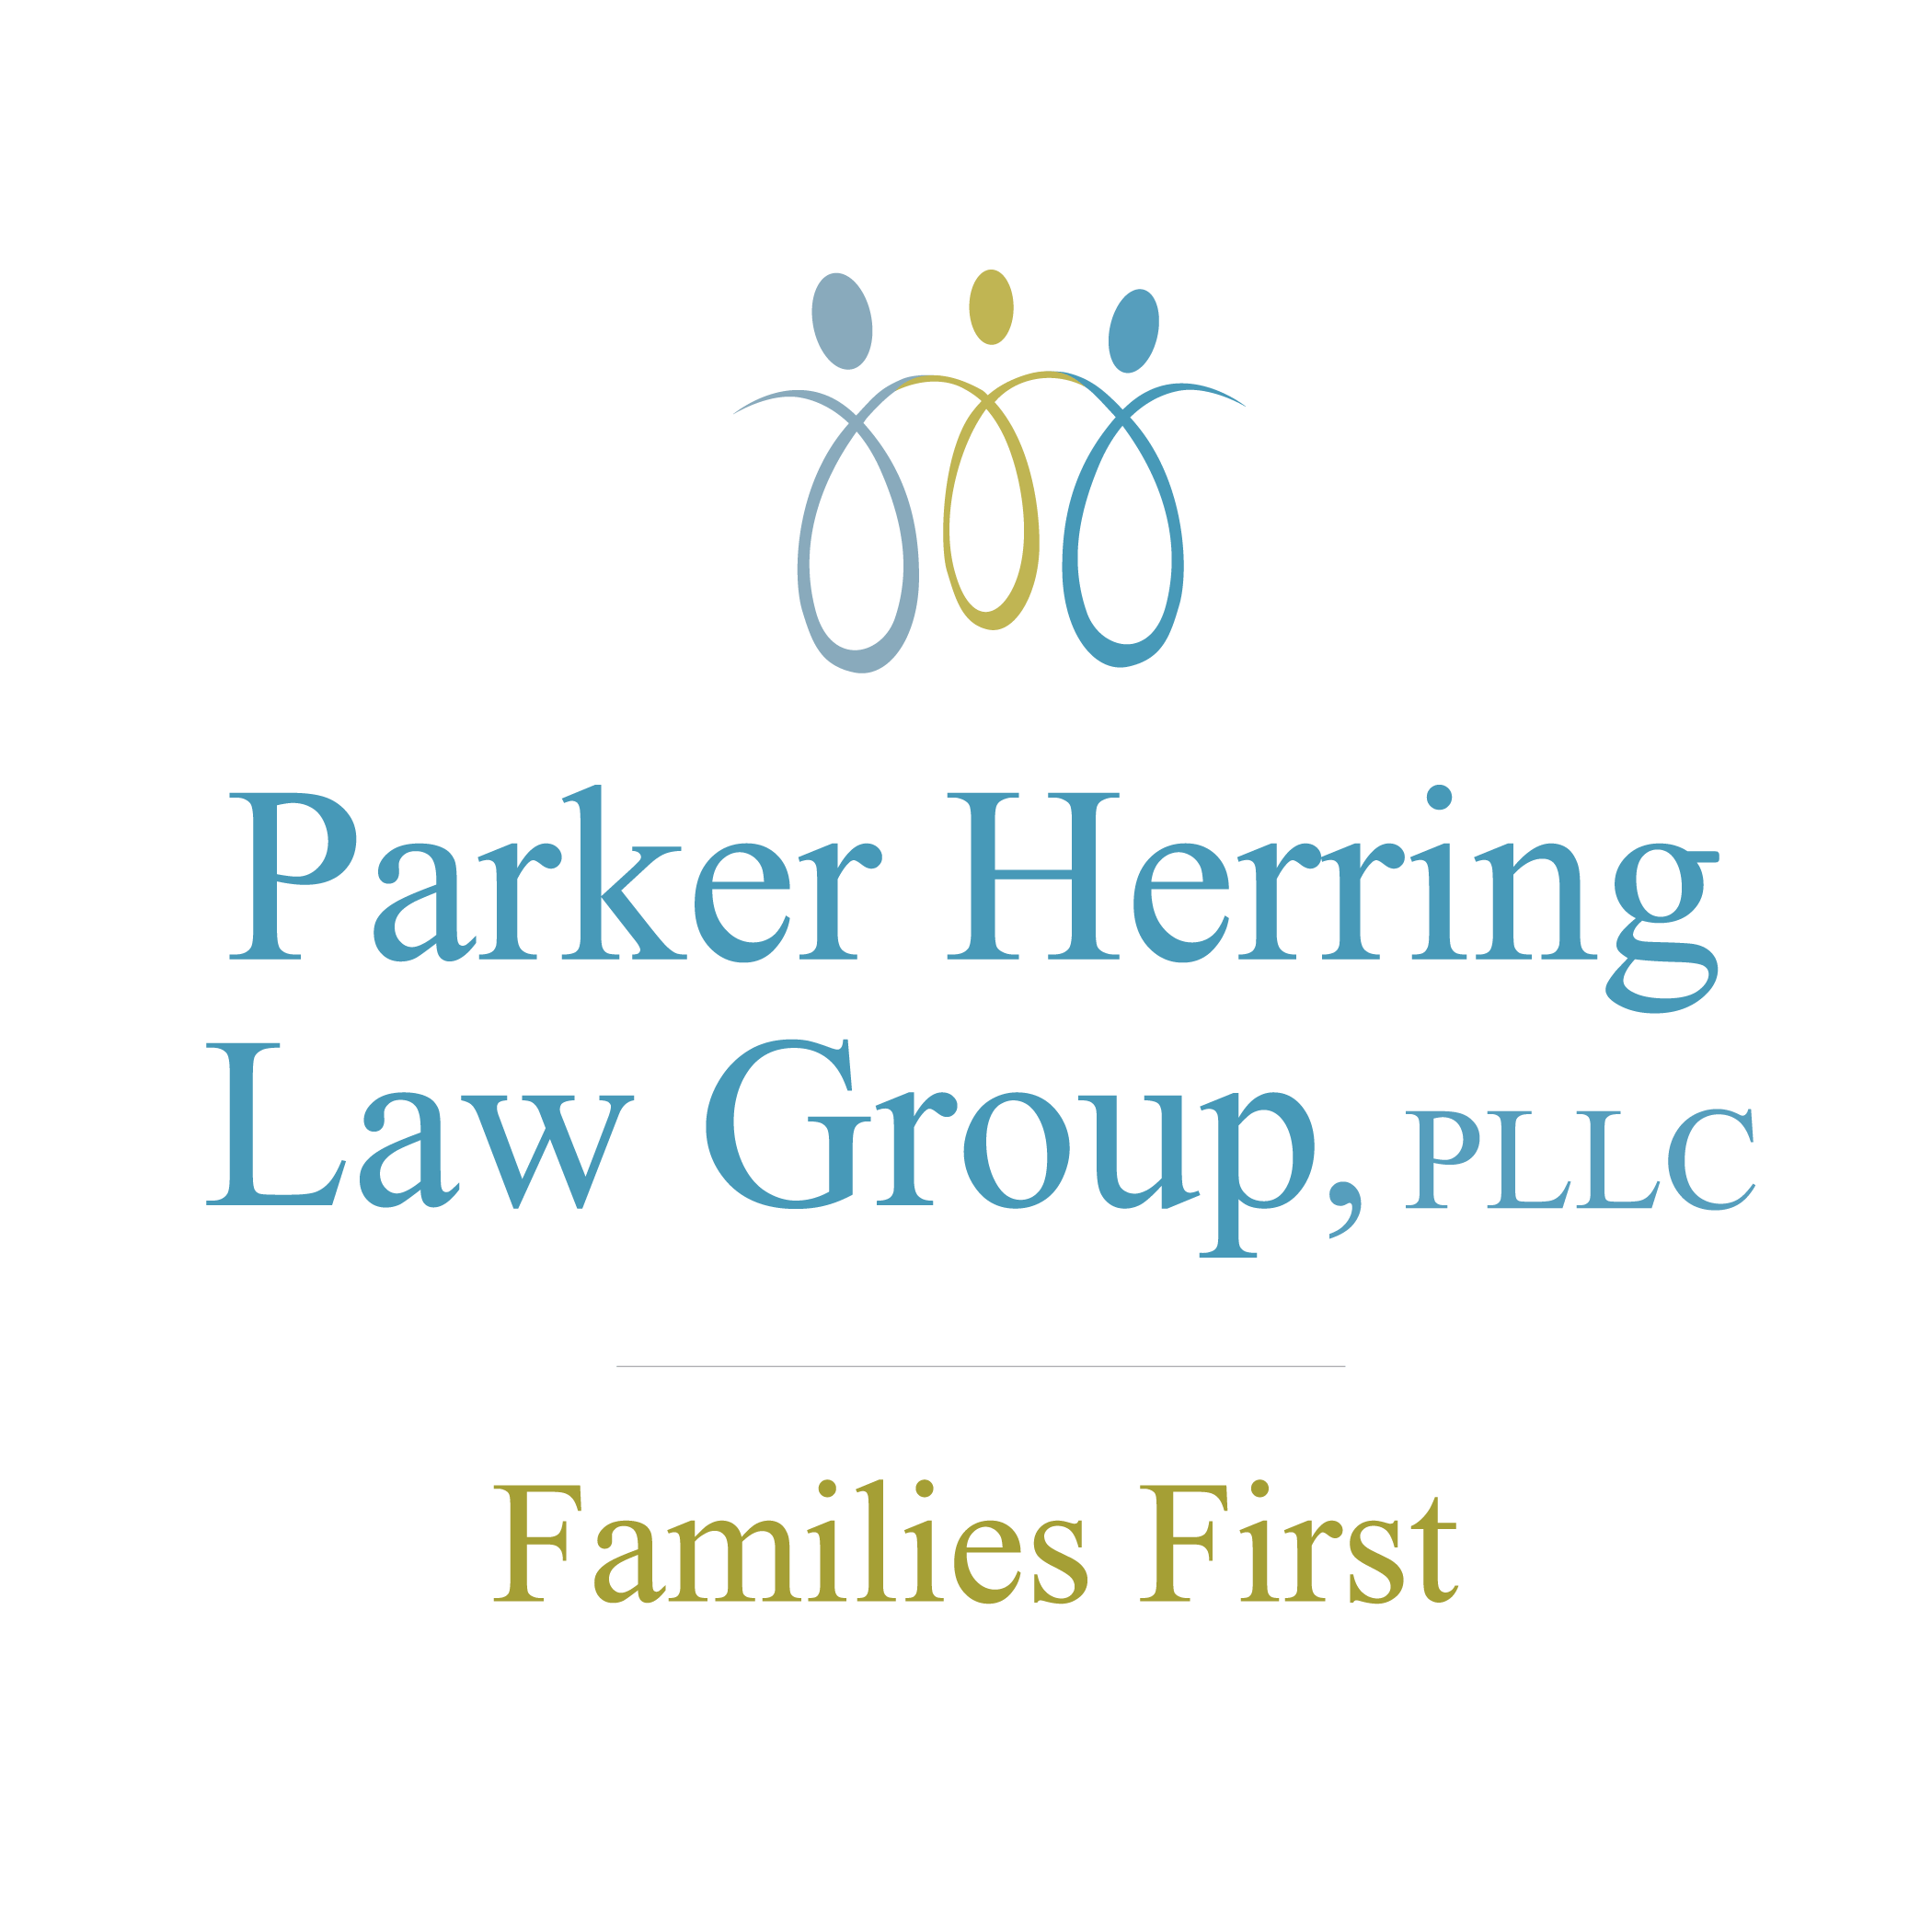 Parker Herring Law Group, PLLC